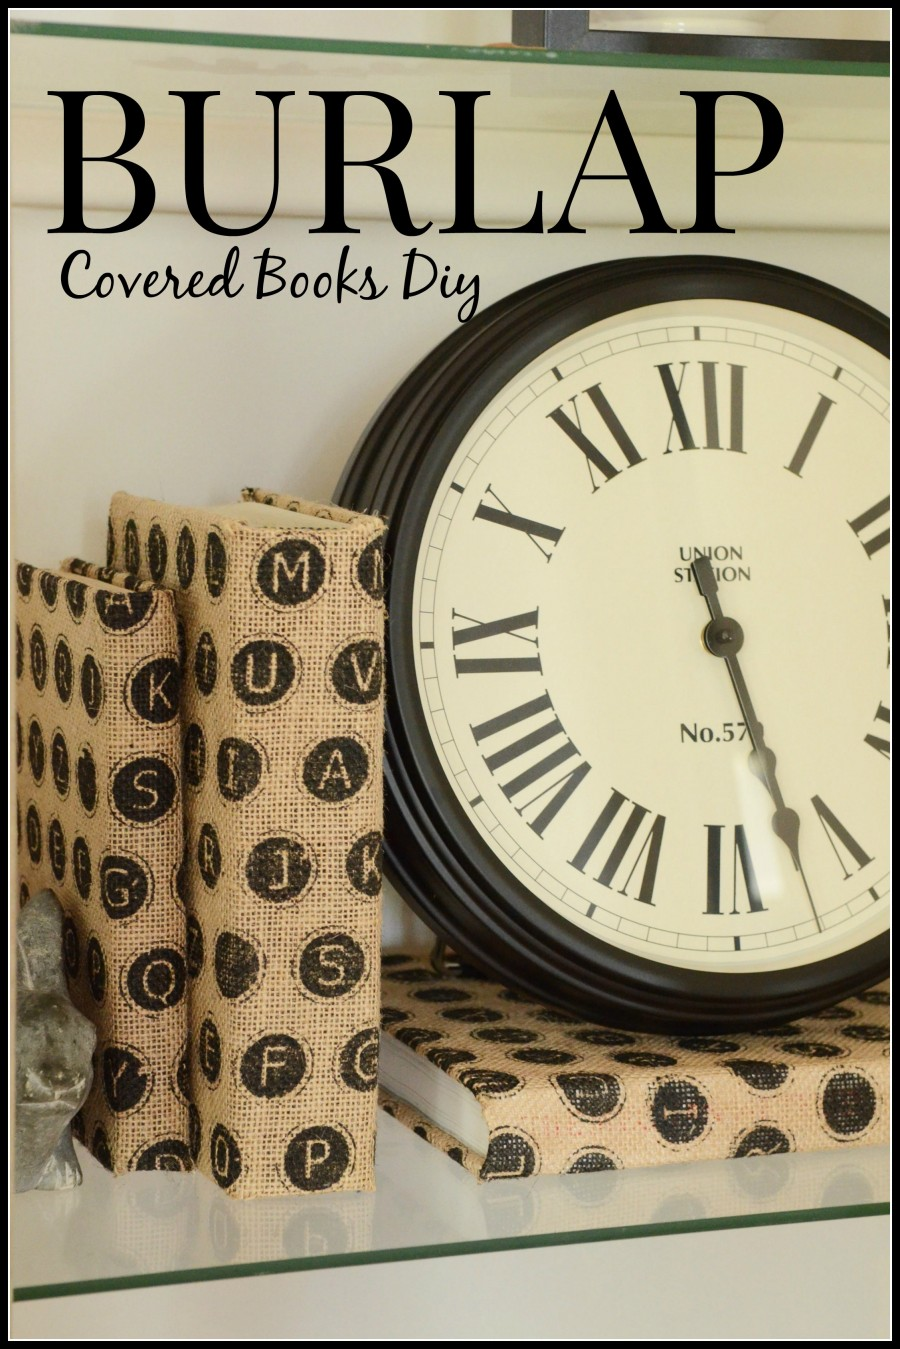 burlap-covered-book-stonegableblog